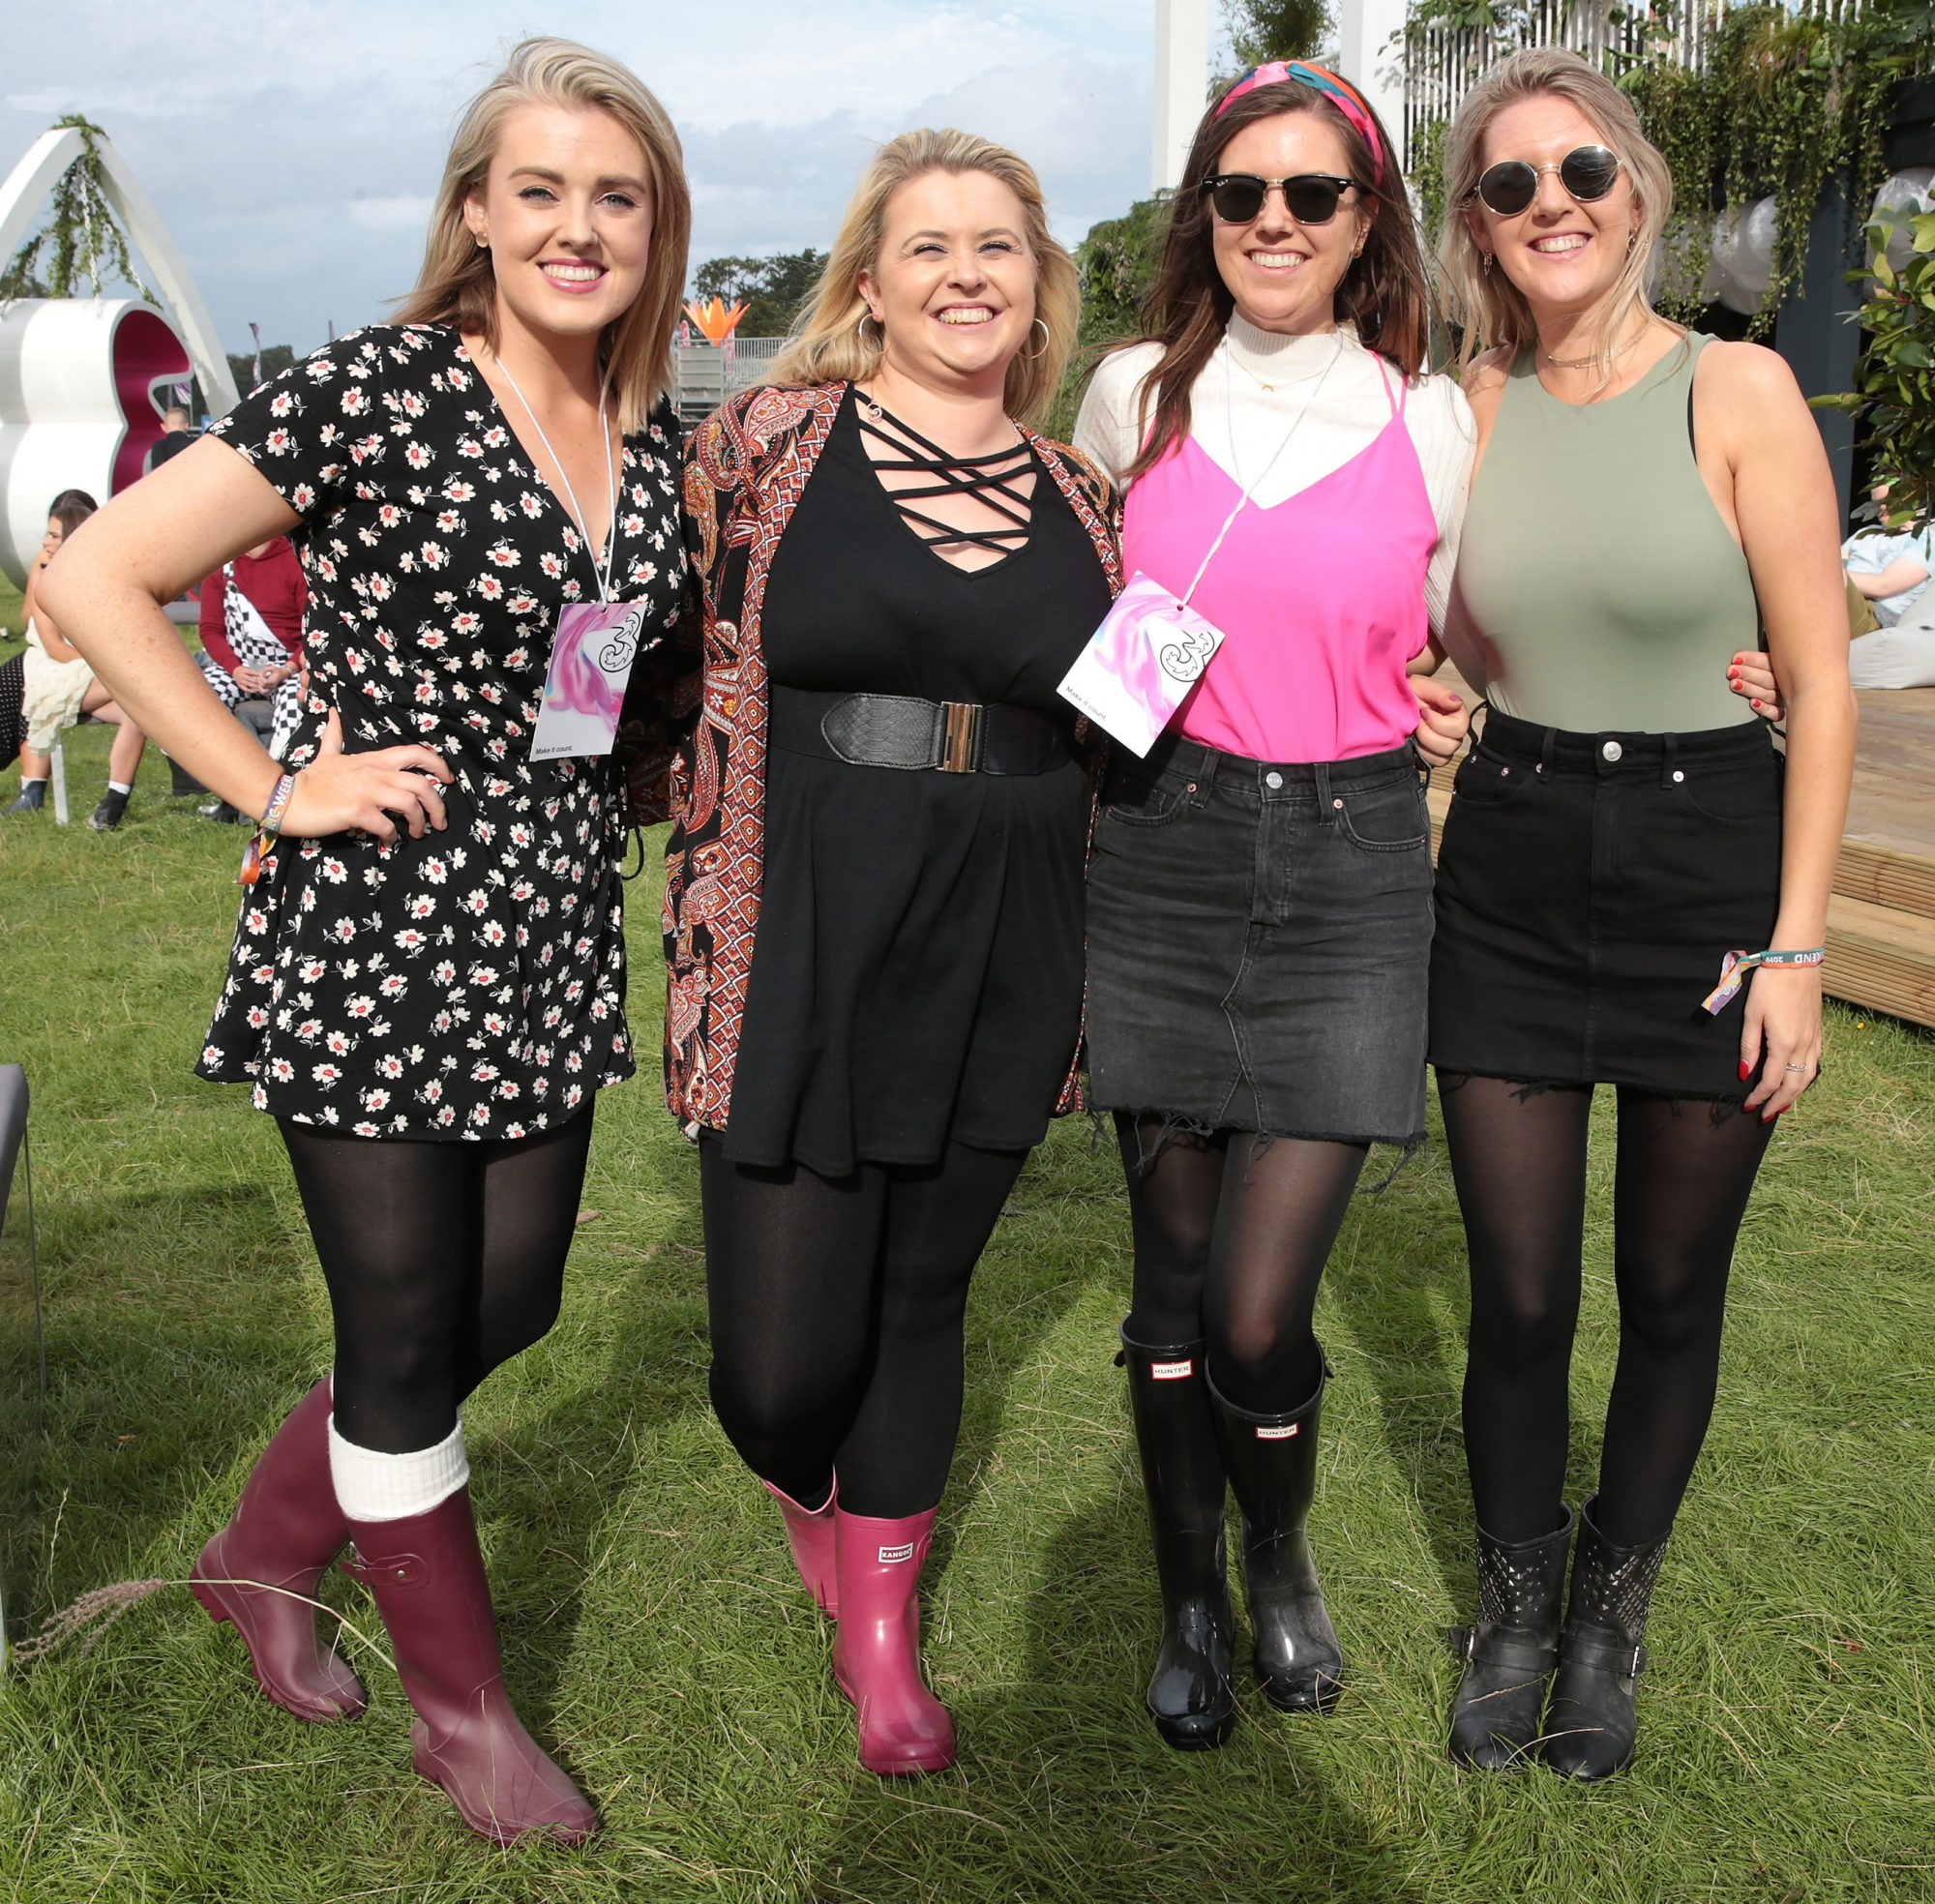 Alison Cox, Elizabeth Keenan, Joanne Campbell and Aisling Buckley at Three's Charge & Chill at Electric Picnic at Stradbally, Co. Laois. Picture: Brian McEvoyNo Repro fee for one use